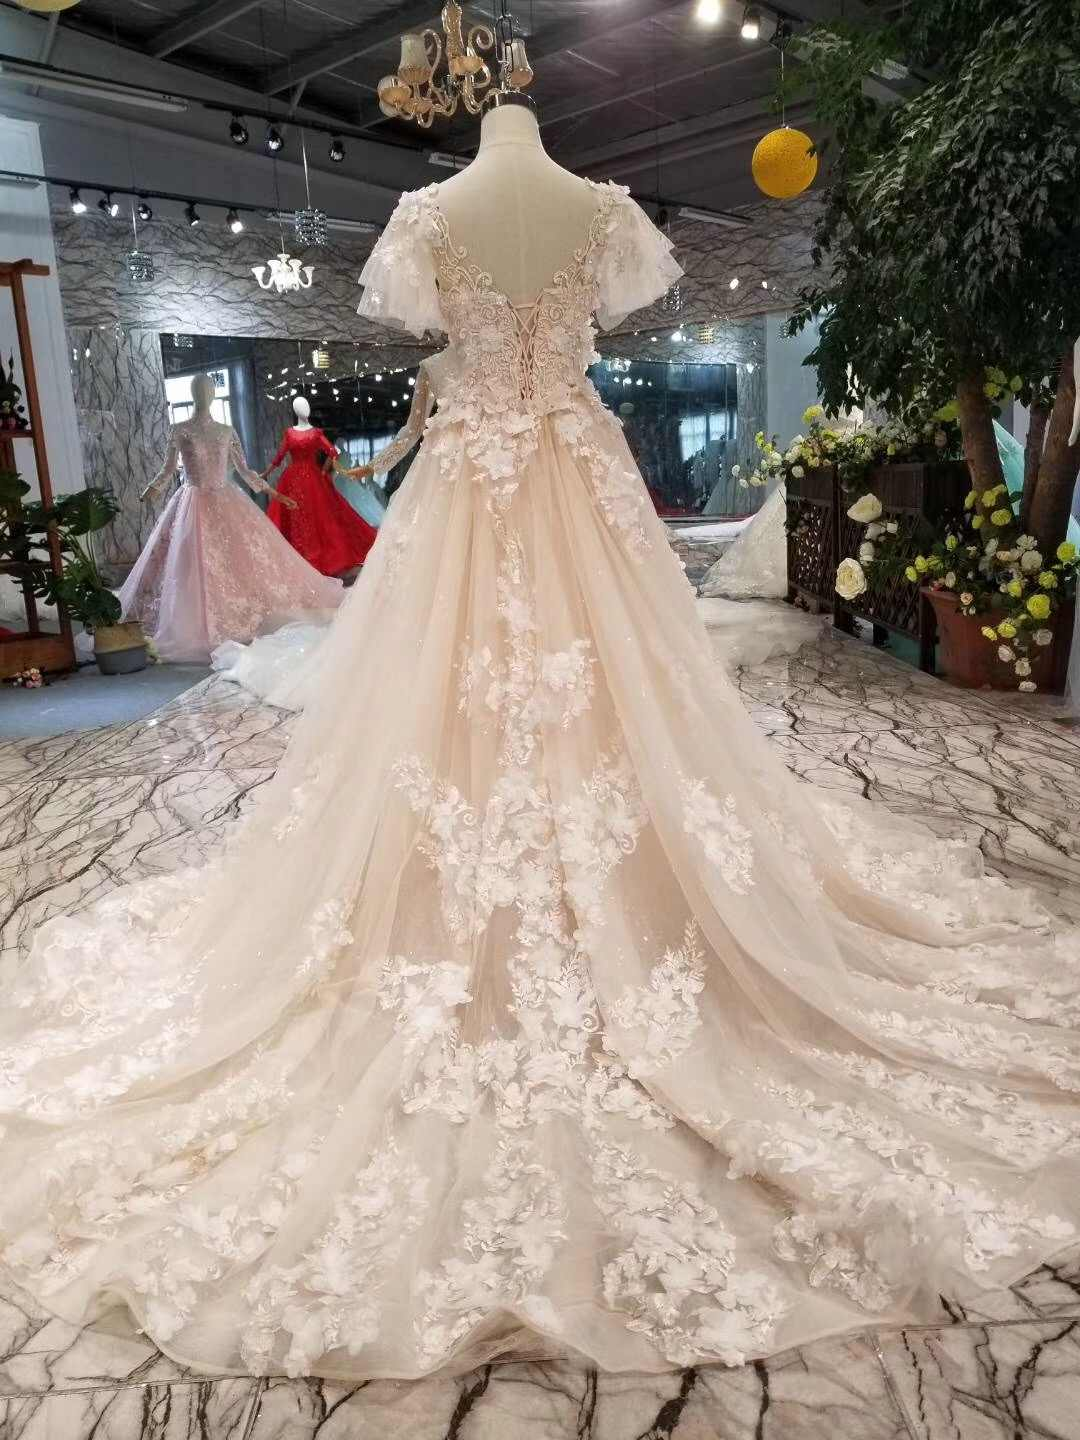 9f847b418f8c ... 2019 Champagne Pink Lace Long Sleeves Mermaid Wedding Dress With  Detachable Train 3d Flowers Appliques Overskirt ...